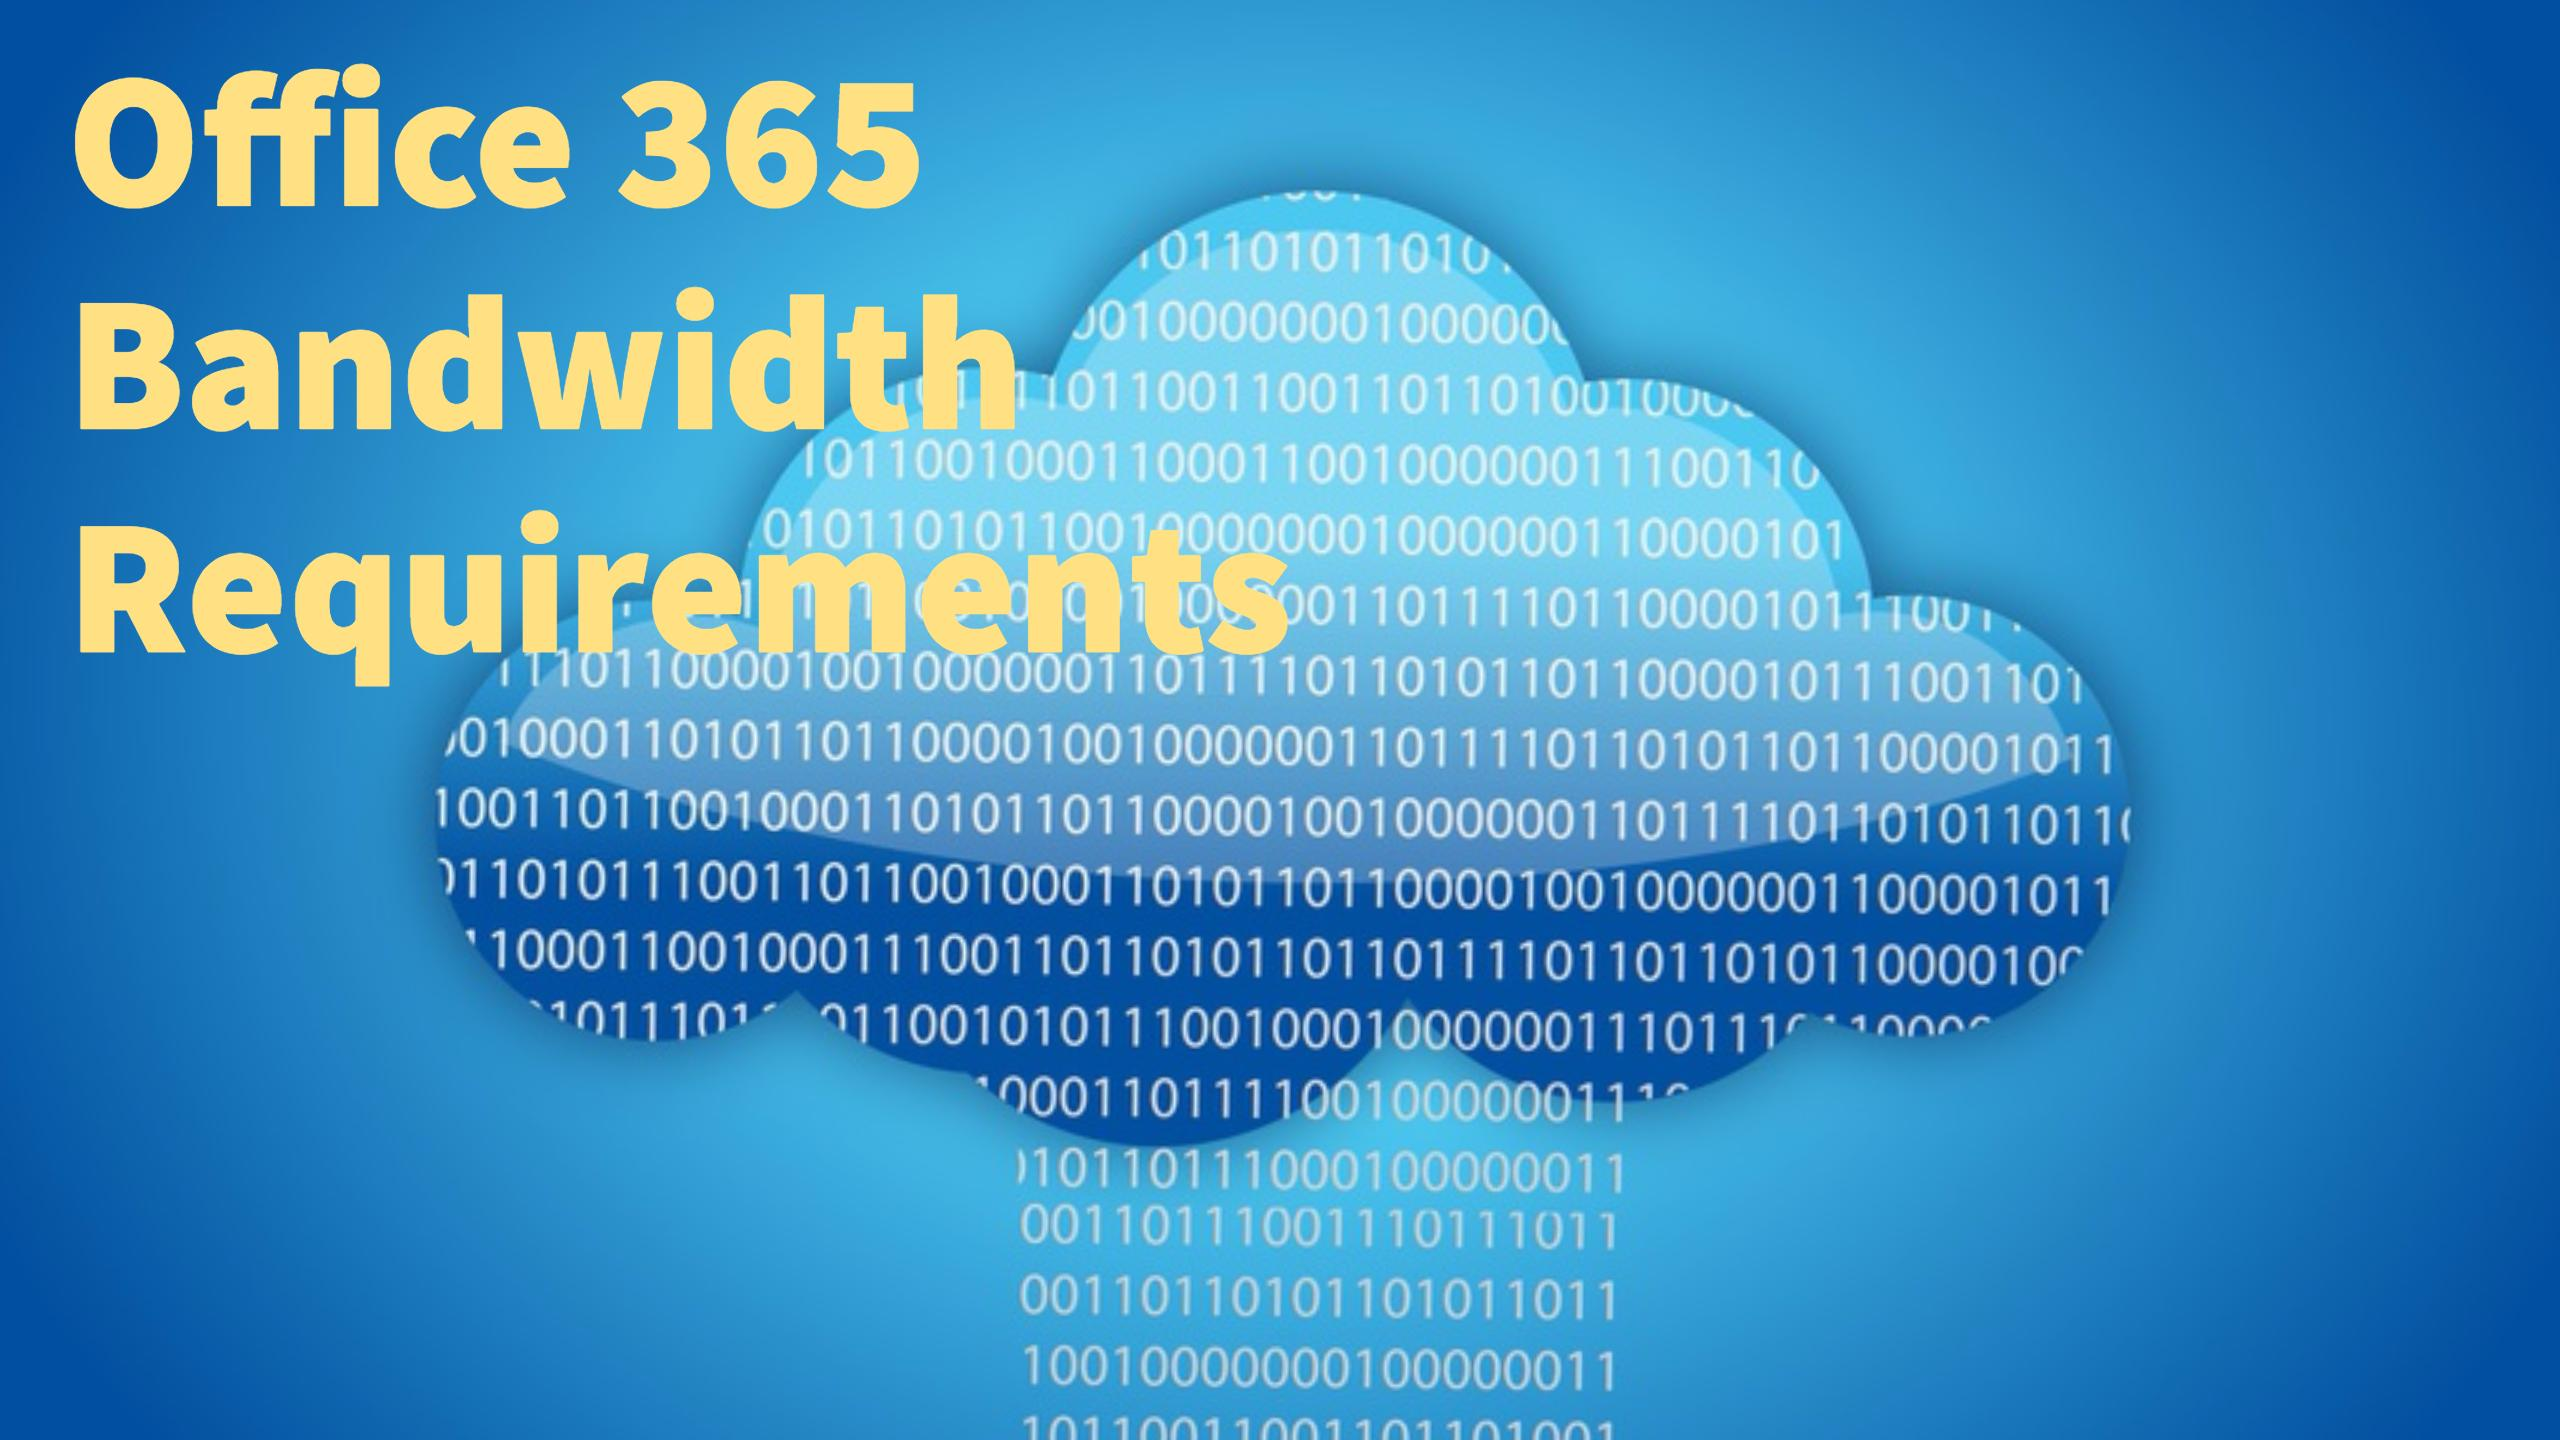 office 365 network bandwidth requirements